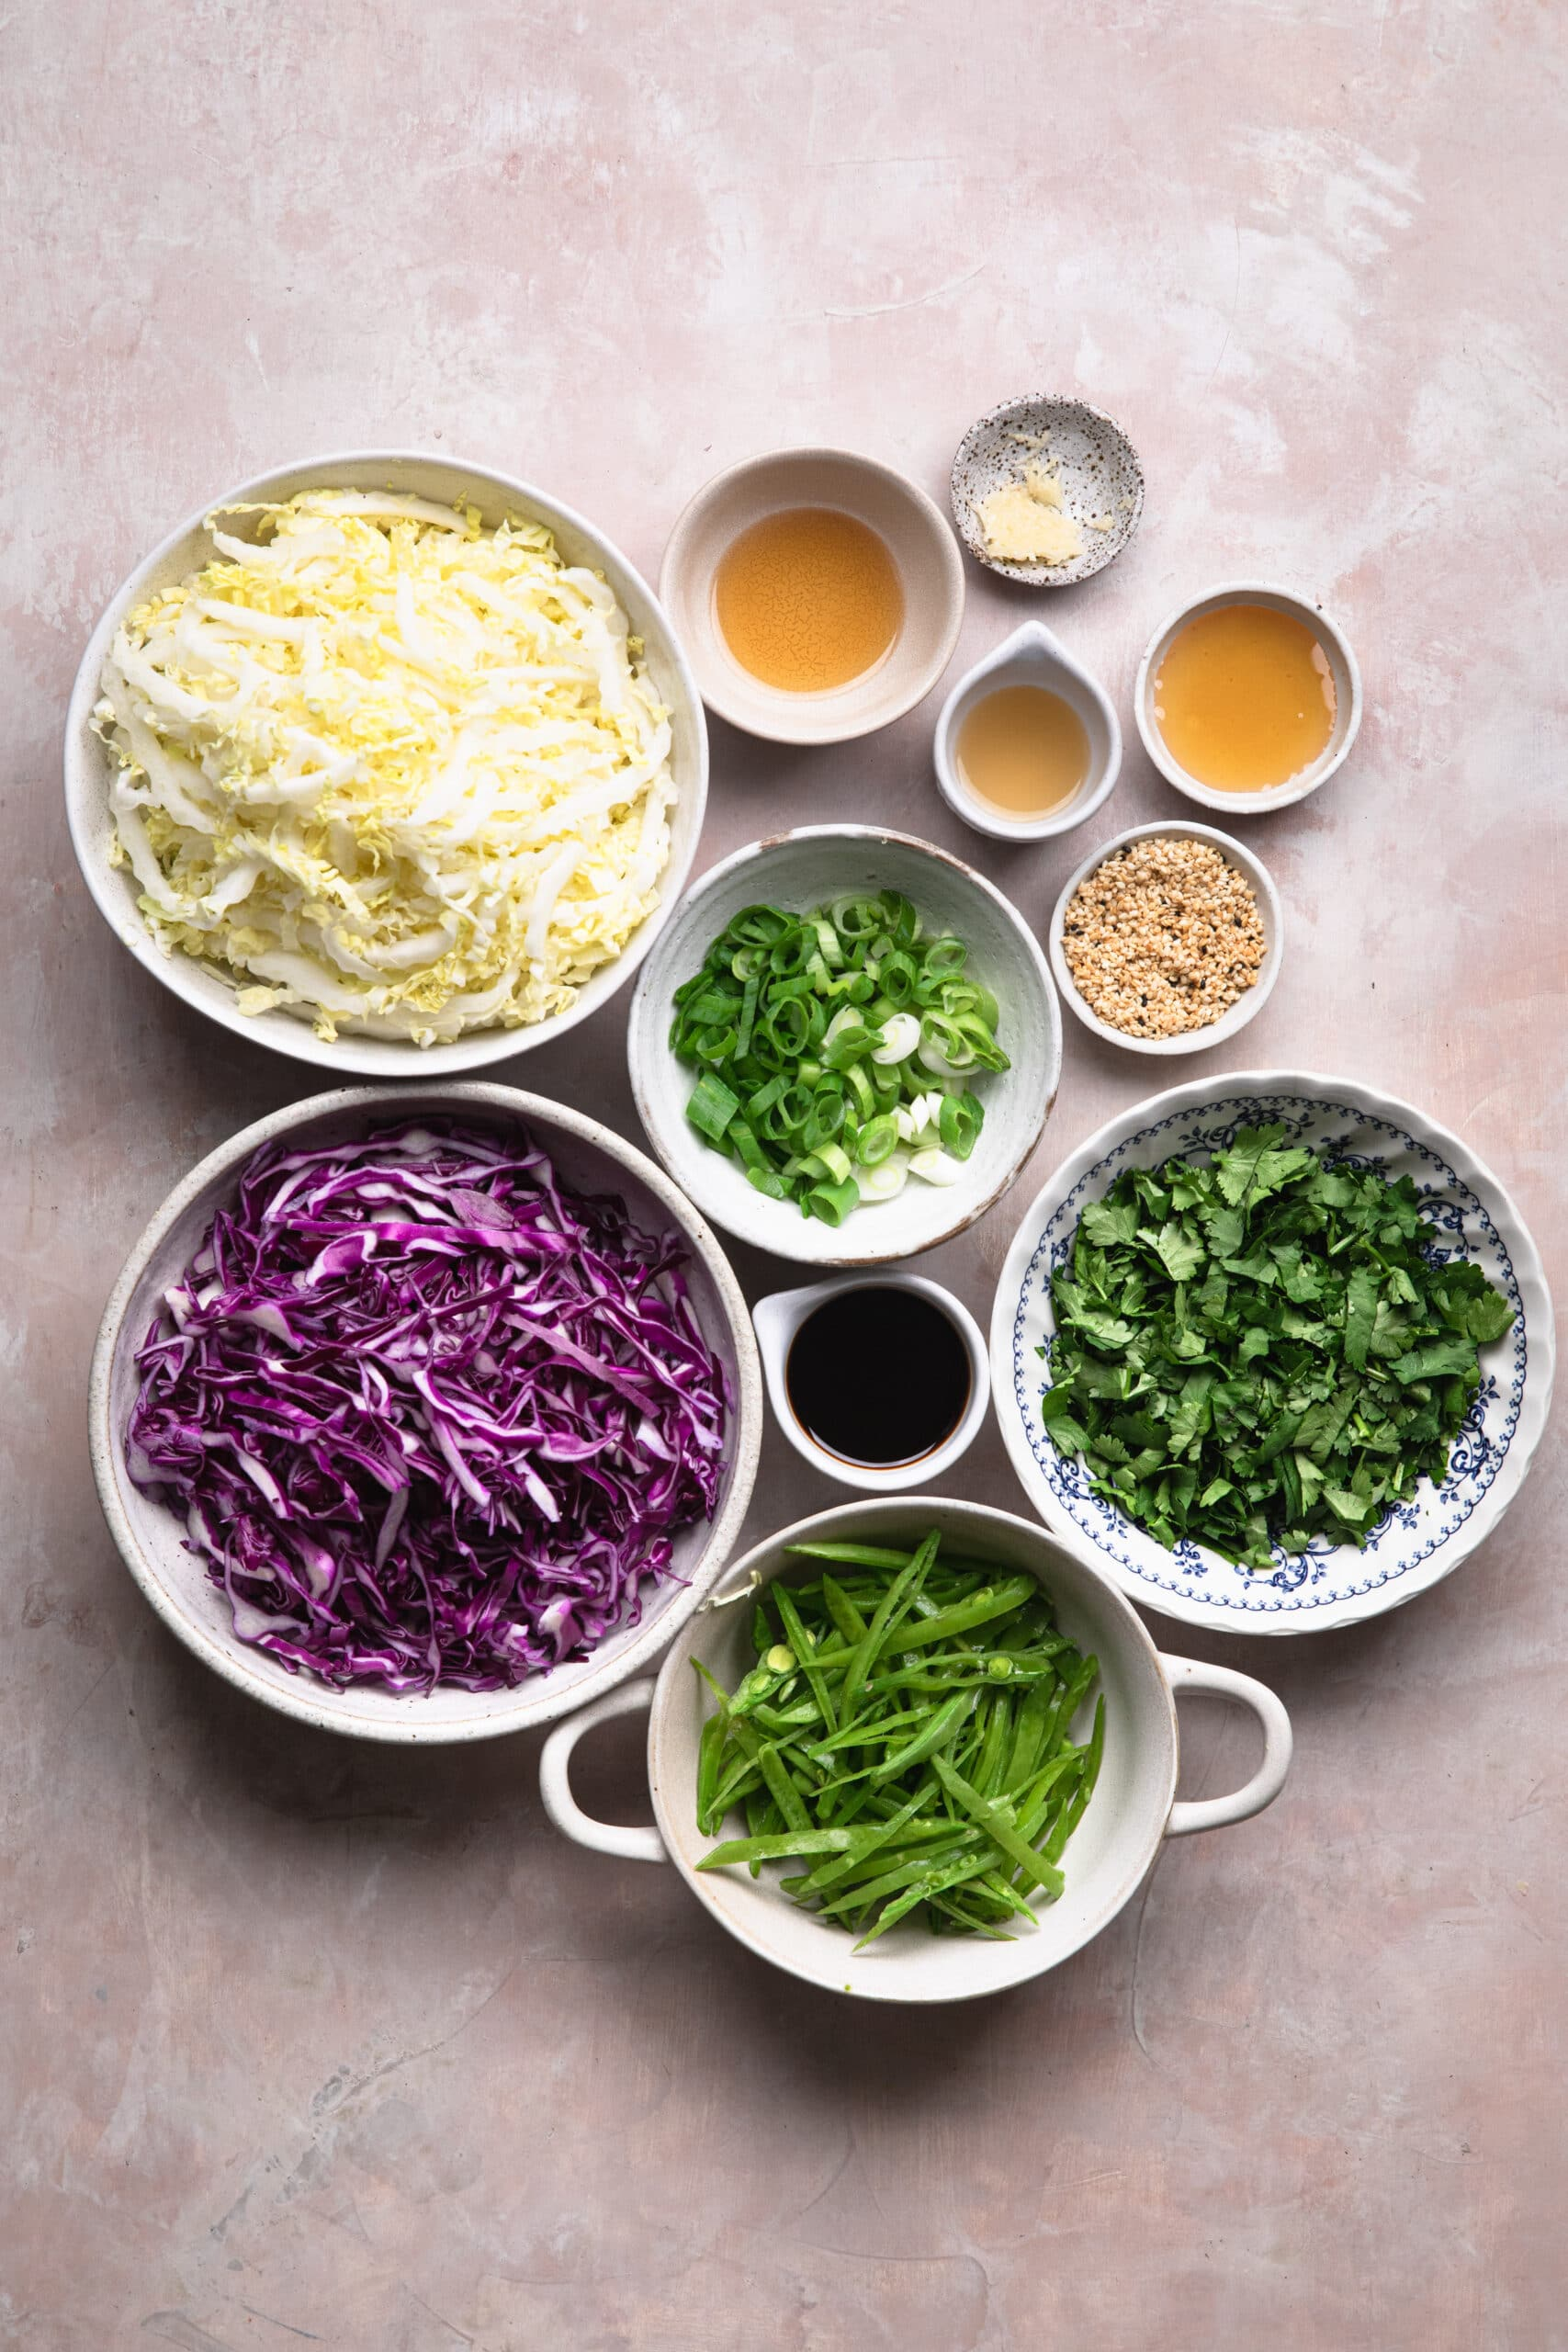 ingredients you need to make asian style slaw